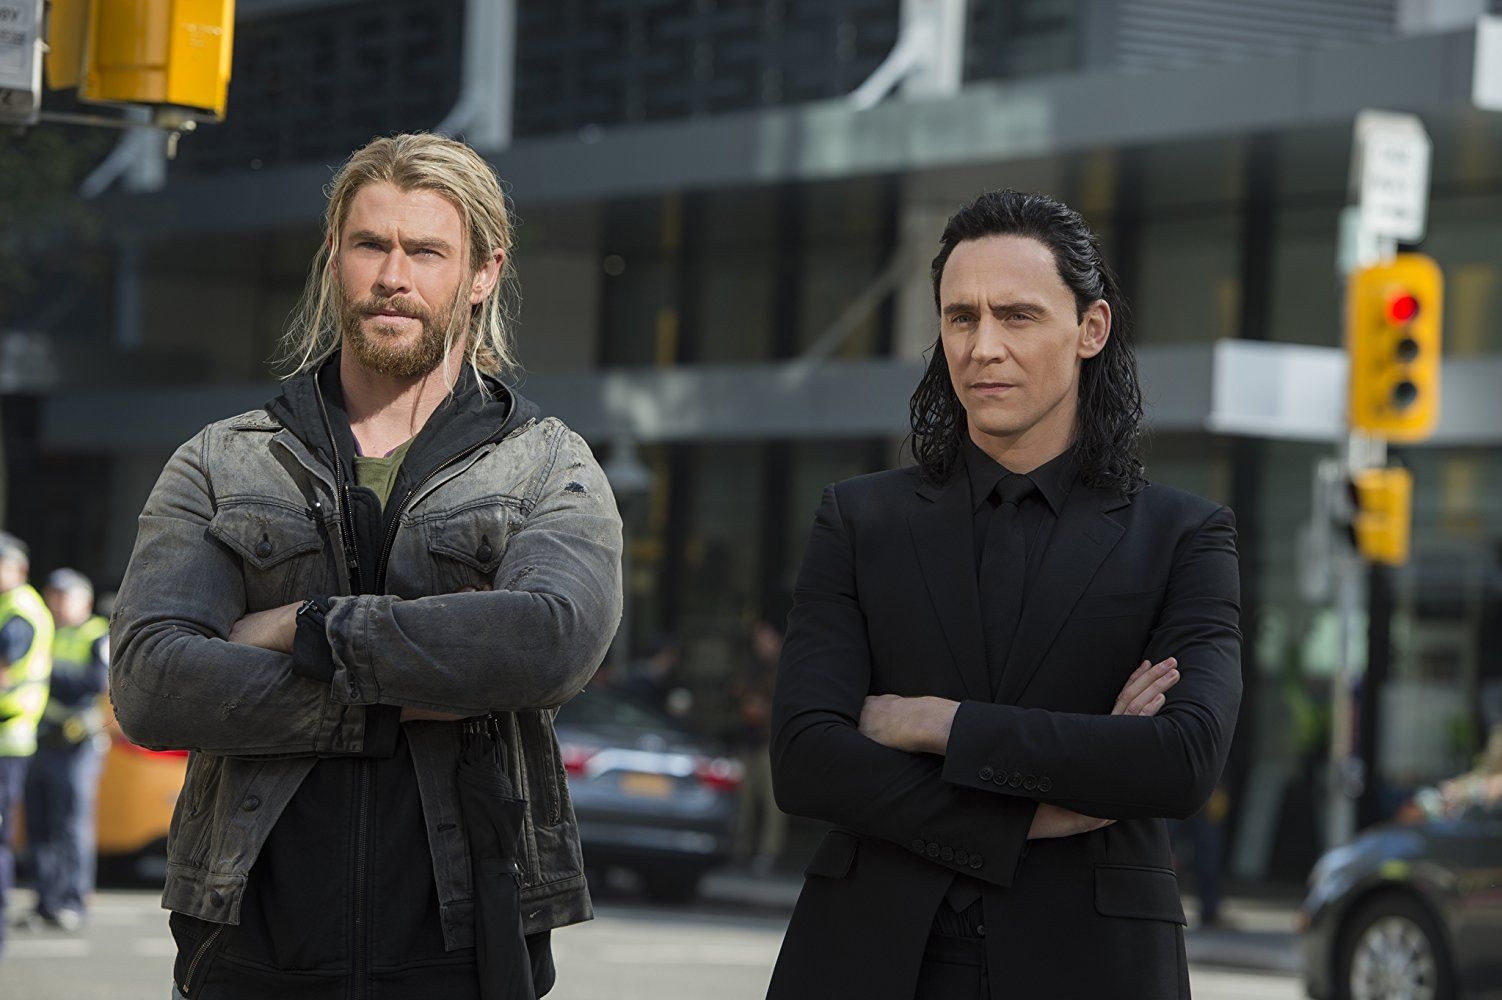 Chris Hemsworth and Tom Hiddleston in Thor: Ragnarok